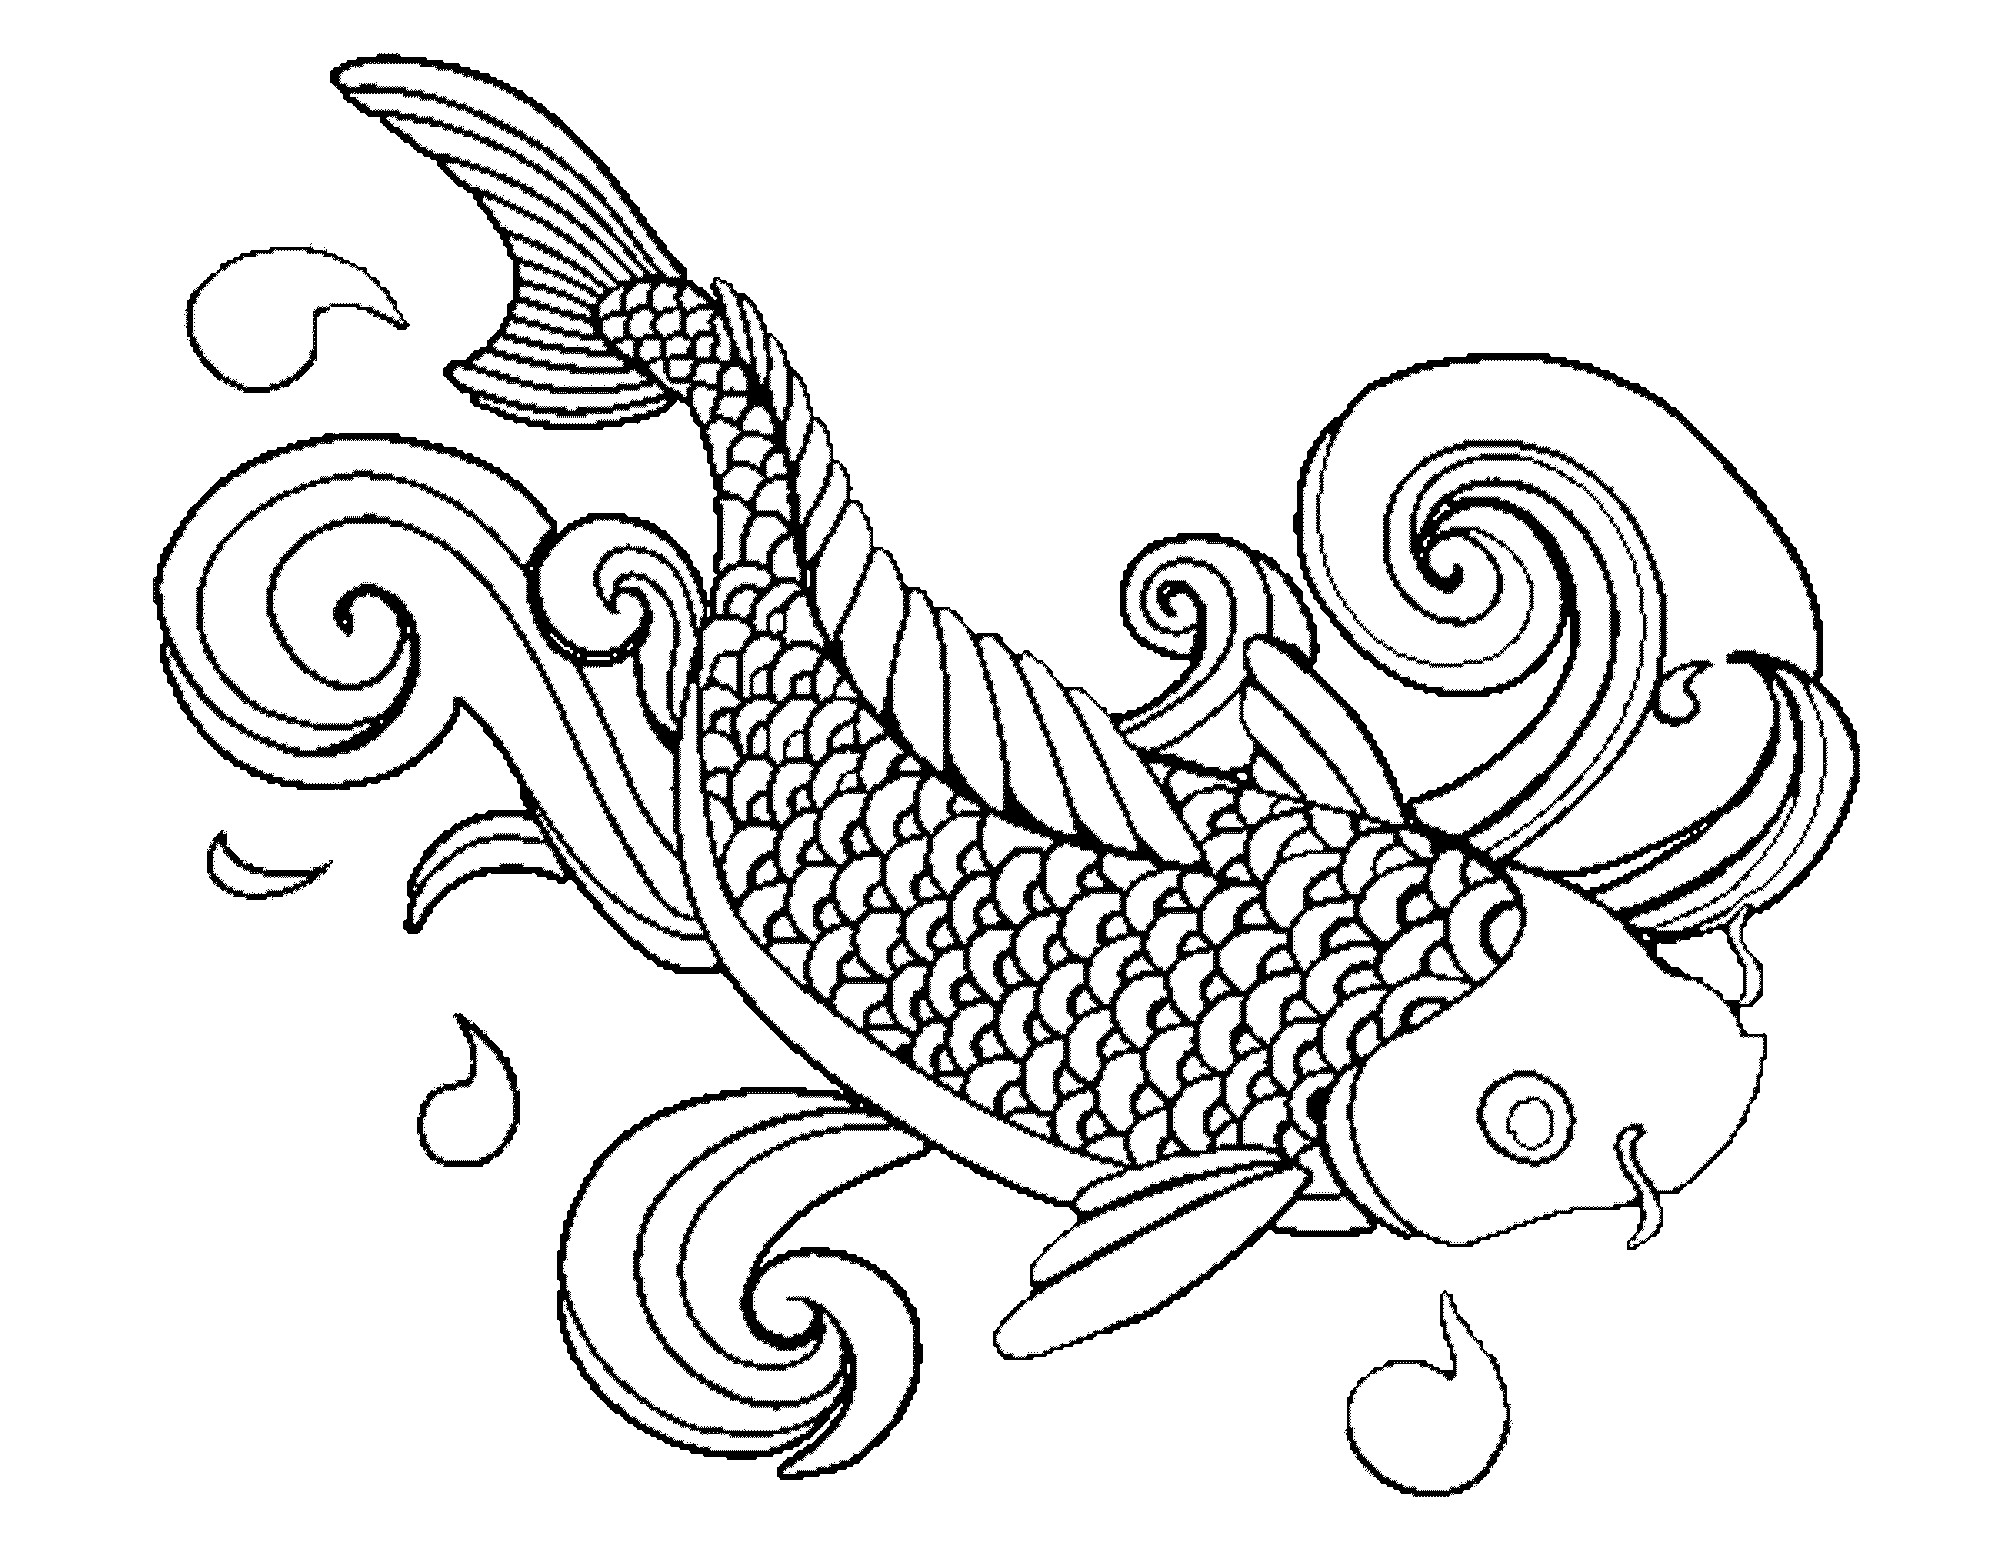 2000x1567 Fish Coloring Pages For Adults Org Printable Fish